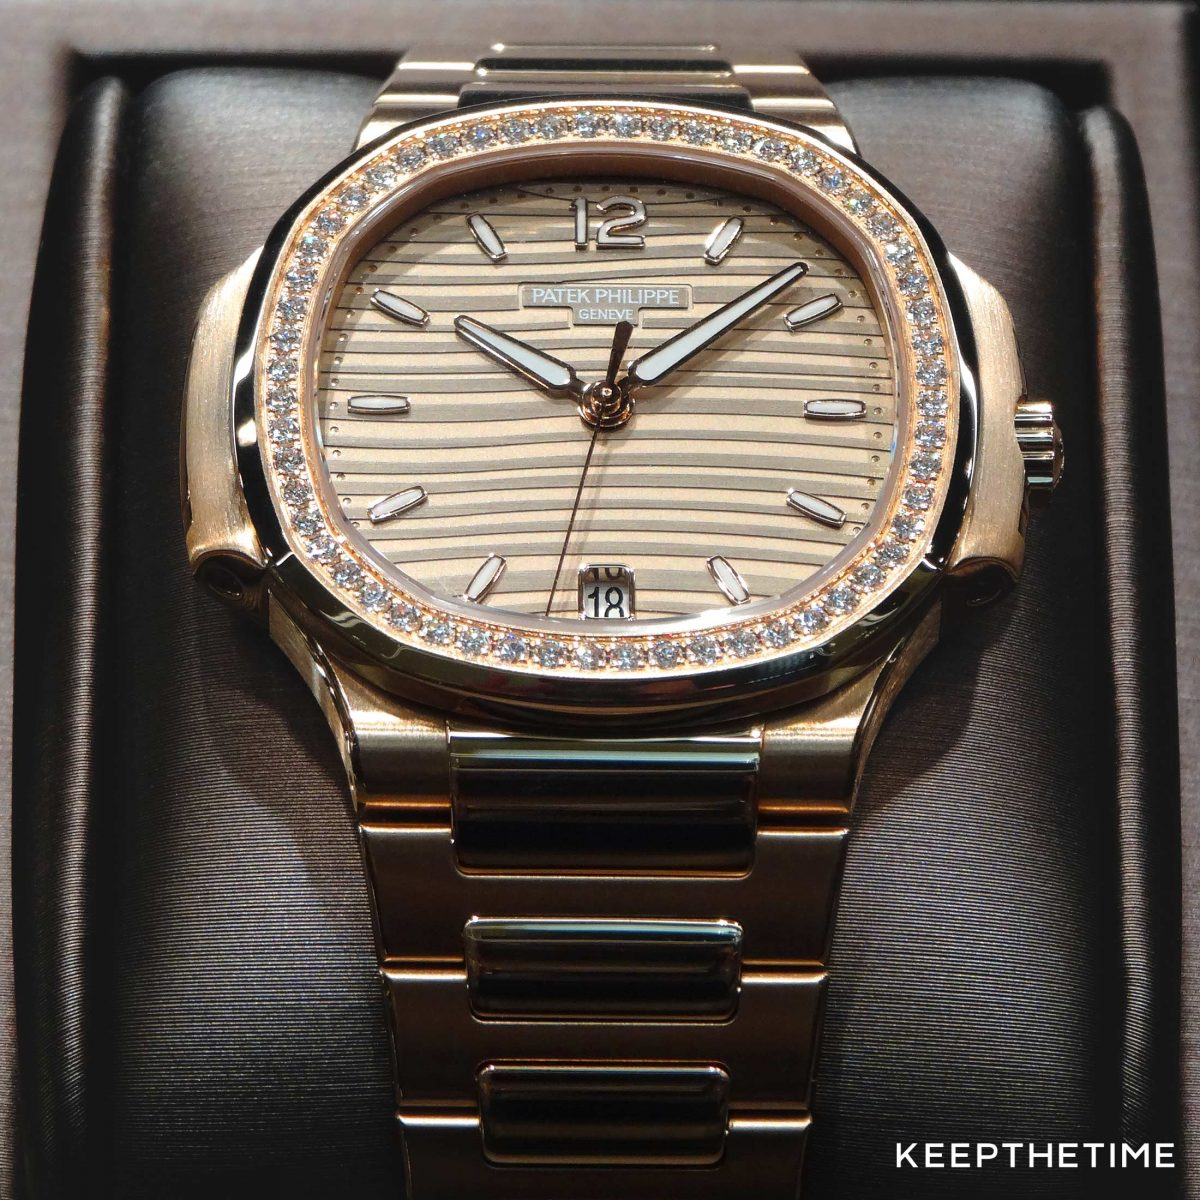 Watch Identifier: Ladies Patek Philippe Nautilus Best Clone Watches In Rose Gold With Diamond Bezel Review